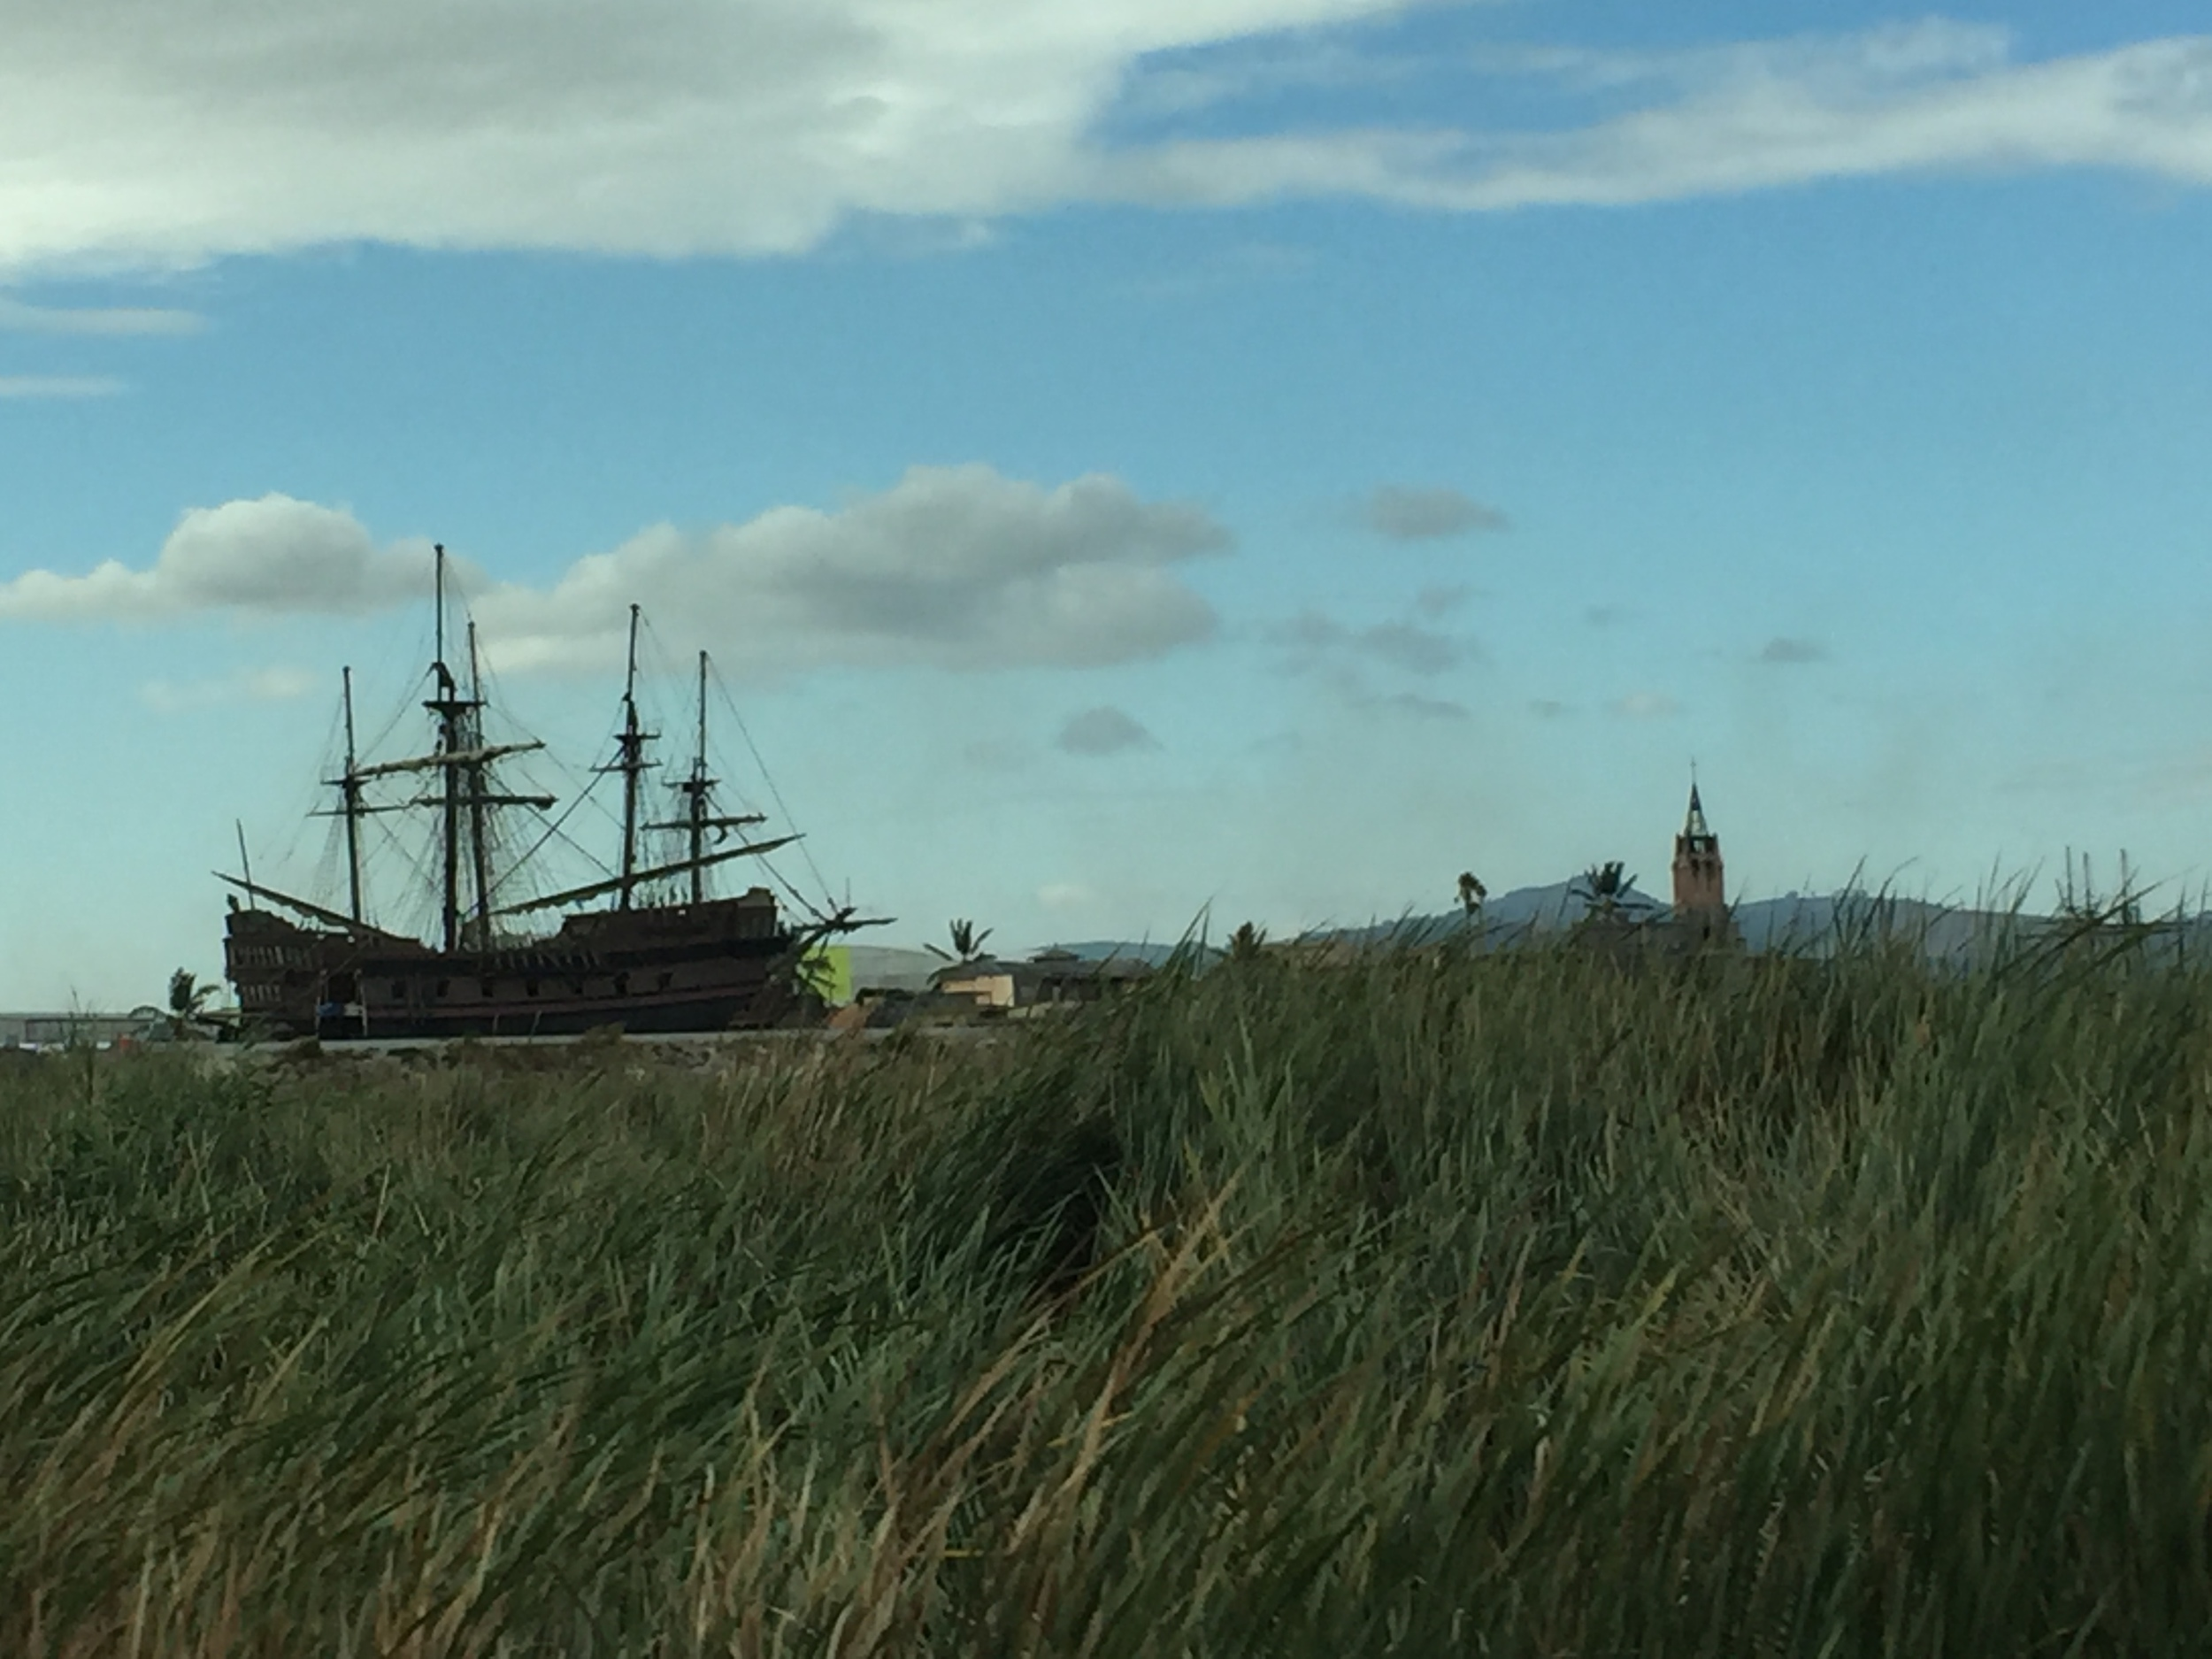 Random pirate ship on the side of the road.